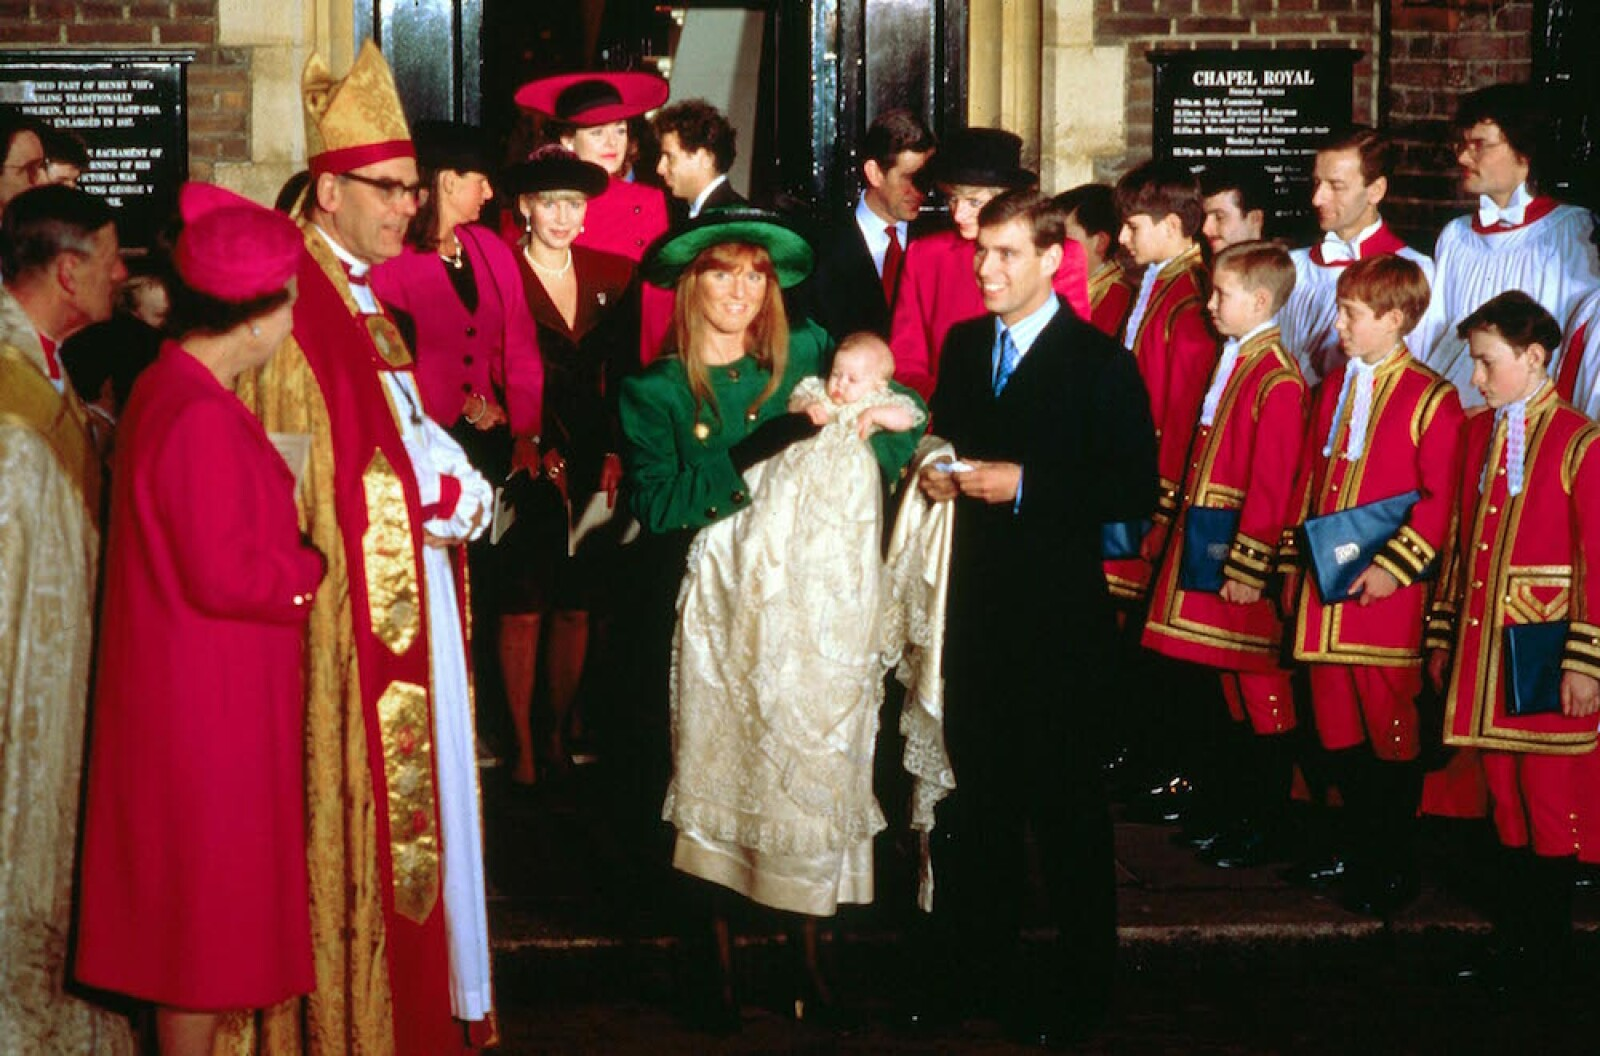 CHRISTENING OF PRINCESS BEATRICE OF YORK, LONDON, BRITAIN - 1988